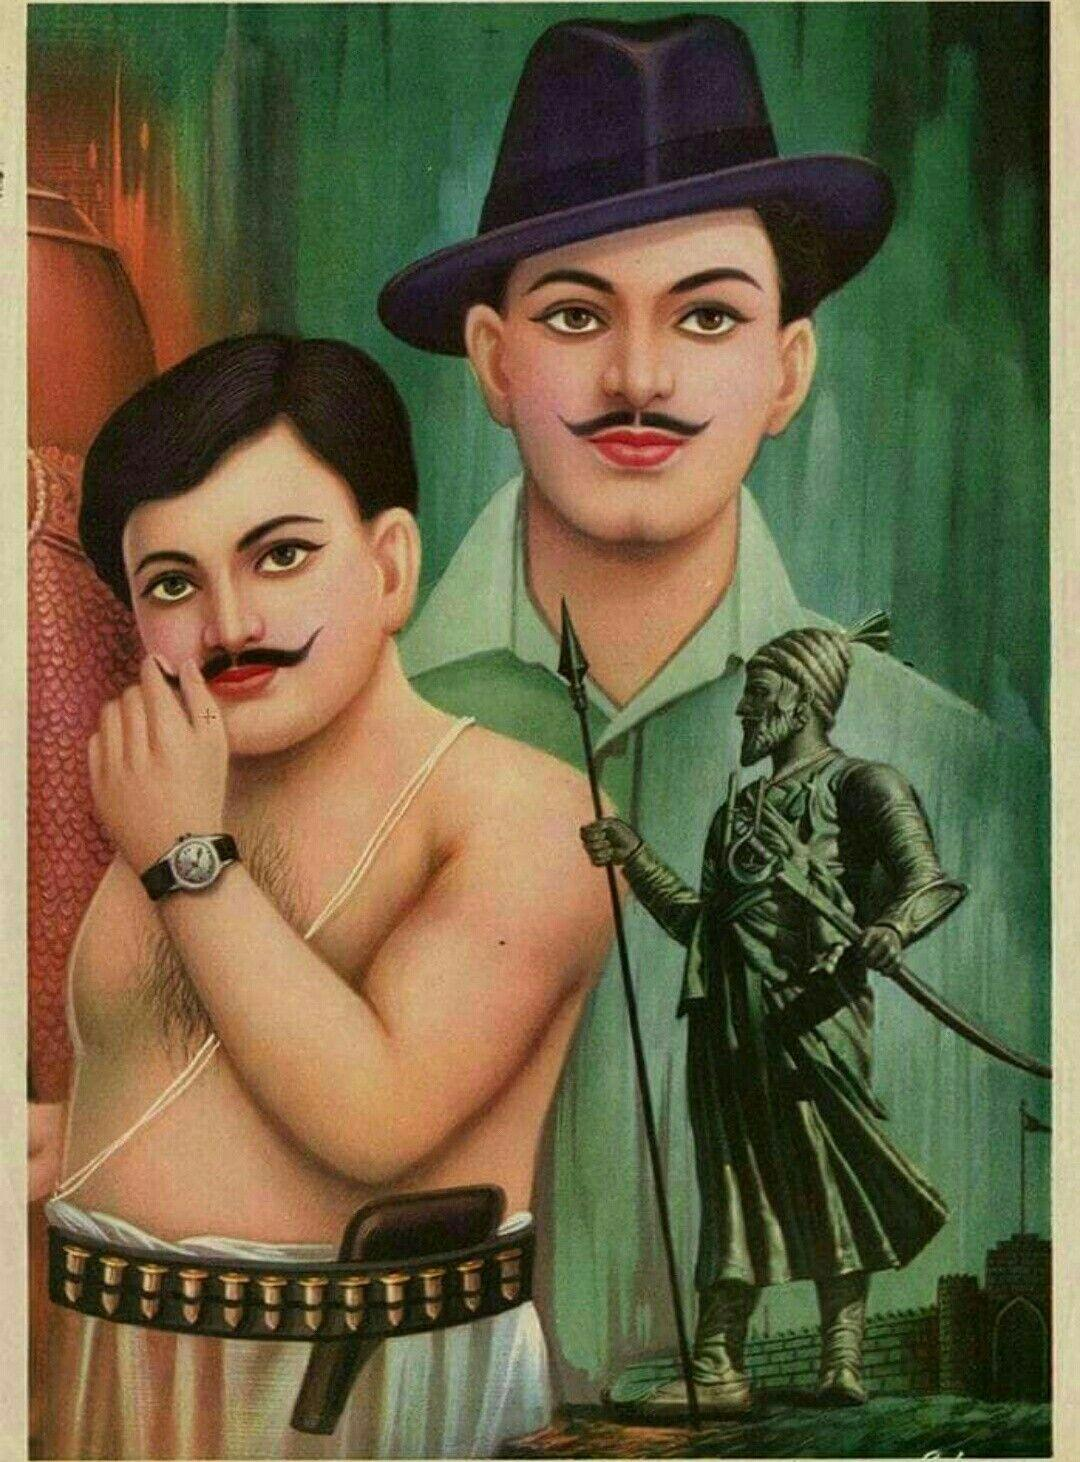 chandra shekhar azad ka photo